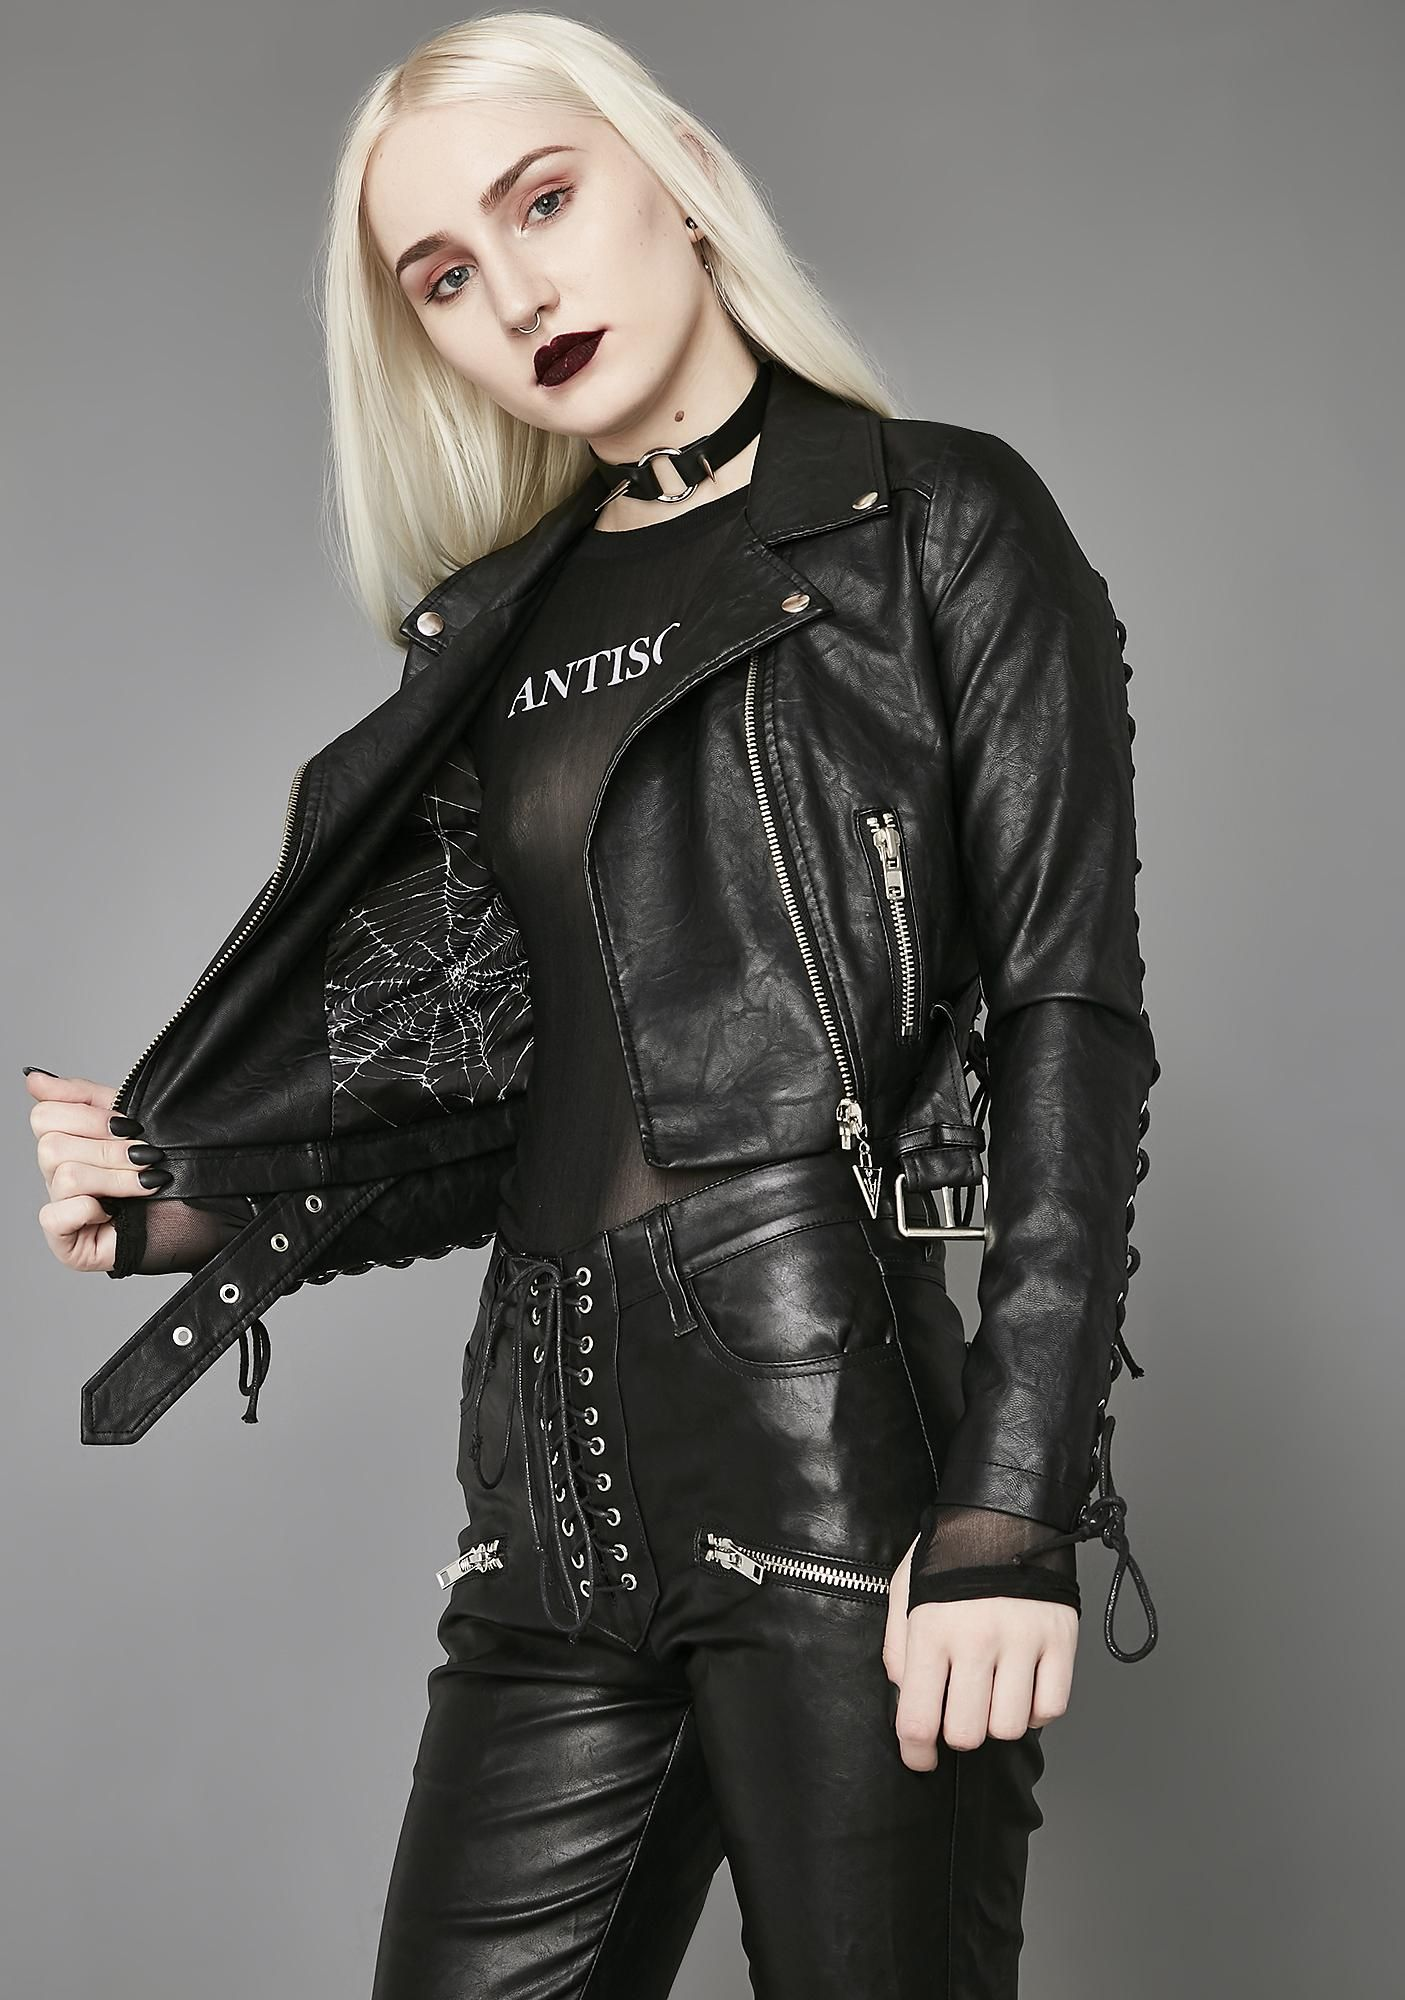 08aea965dfdc Free, fast shipping on Widow Love In Vein Moto Jacket at Dolls Kill, an  online boutique for Widow and goth fashion. Shop Widow, new goth fashion,  ...